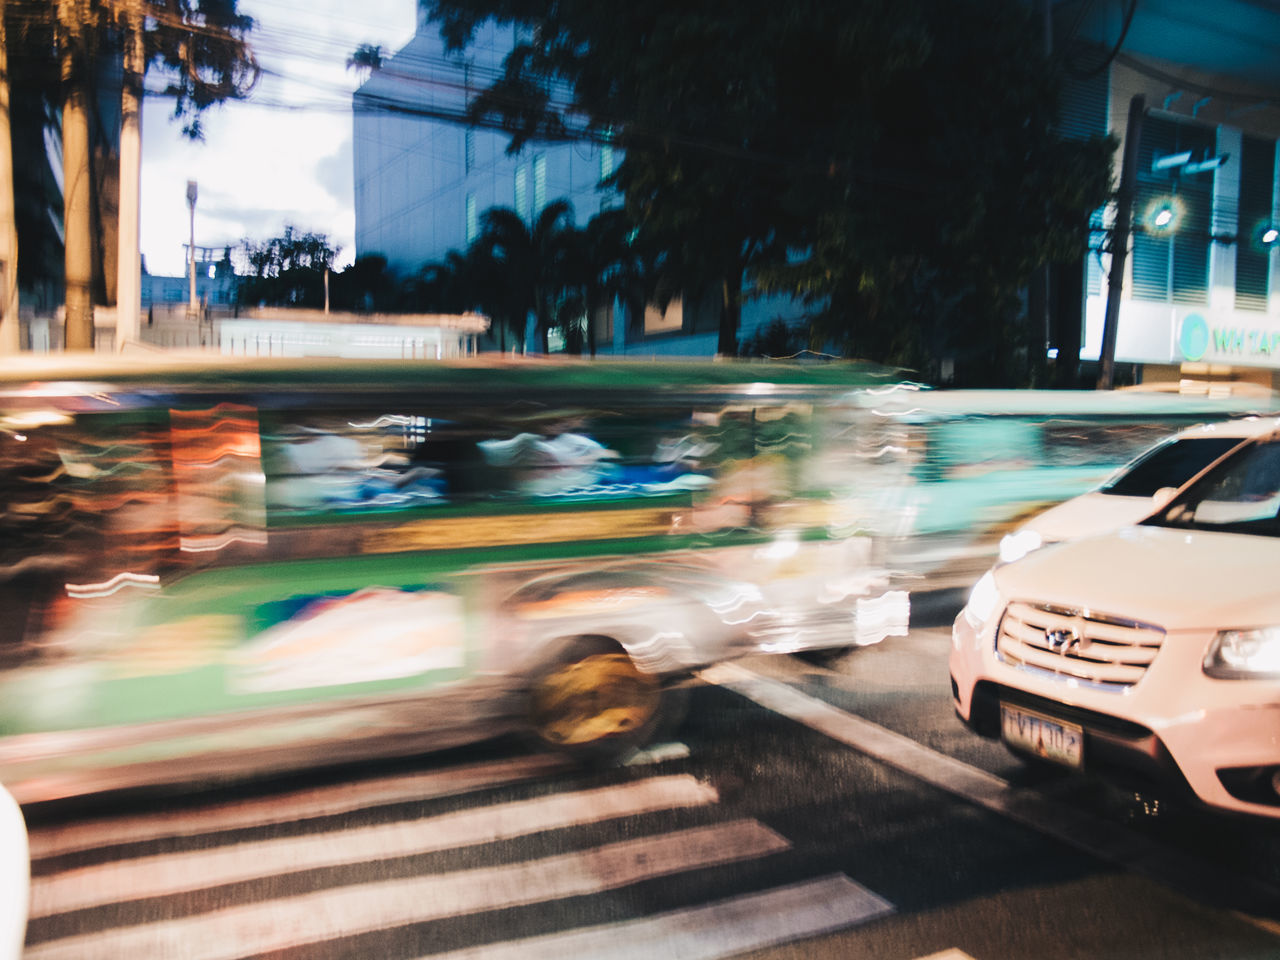 Beep beep Blurred Motion Car Speed City Street Motion City Life Transportation Traffic Night Mode Of Transport Road in Taftavenue, Manila EyeEmNewHere Olympus OLYMPUS PEN E-P3 The Street Photographer - 2017 EyeEm Awards